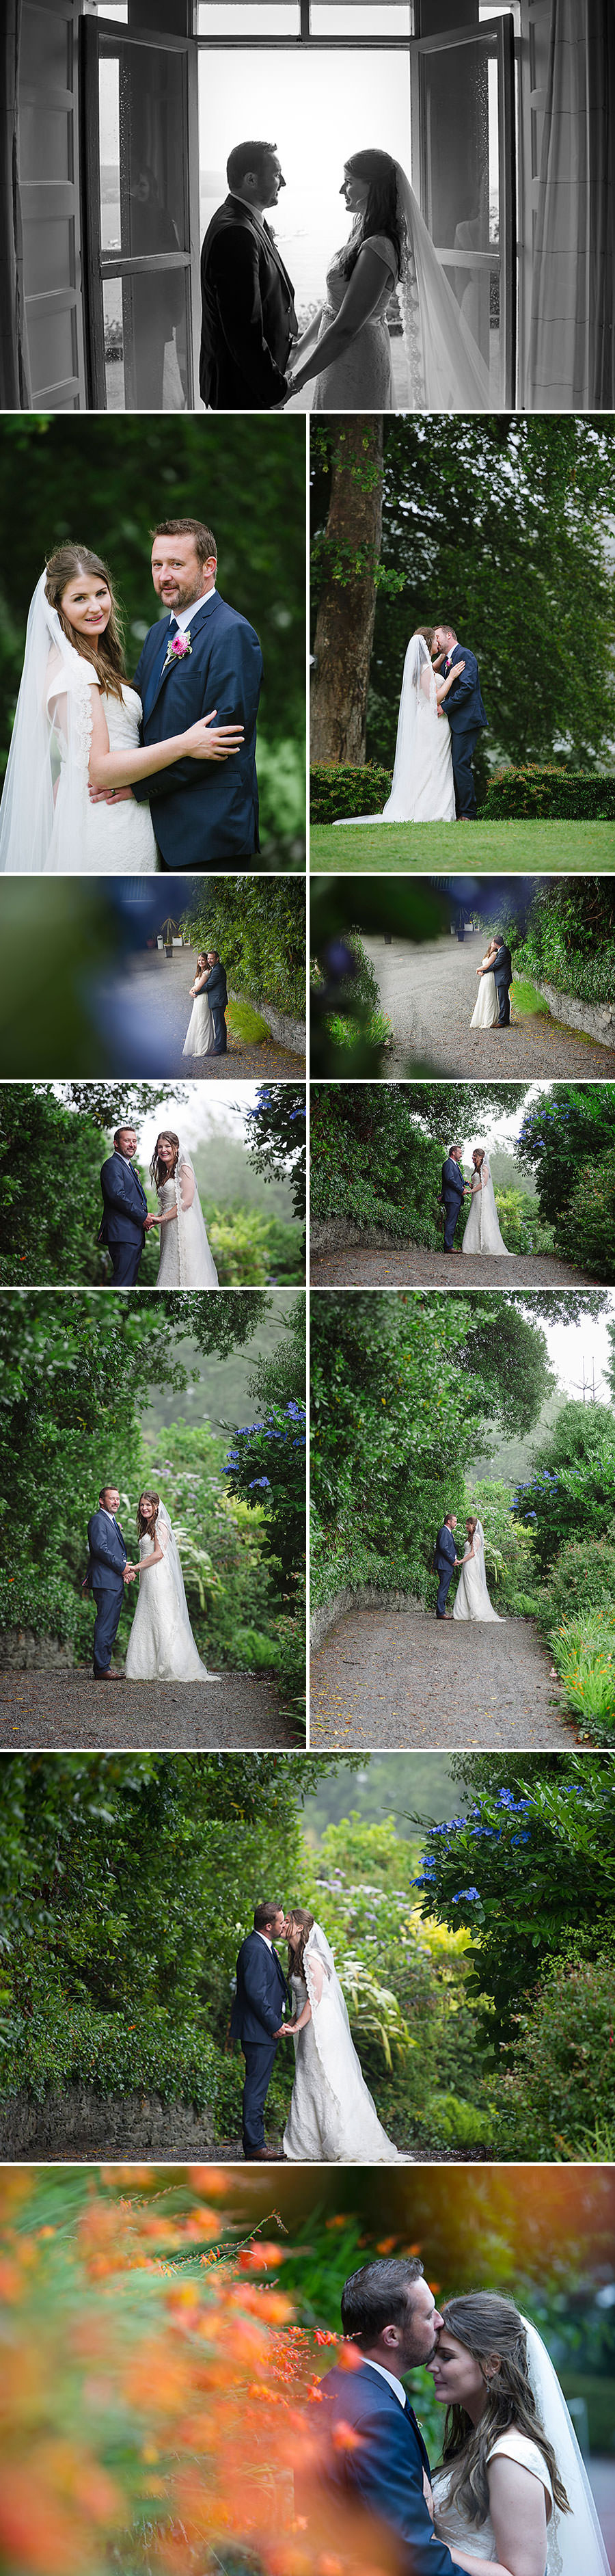 M + G | The Rectory Glandore Wedding | Cork Wedding Photography 17